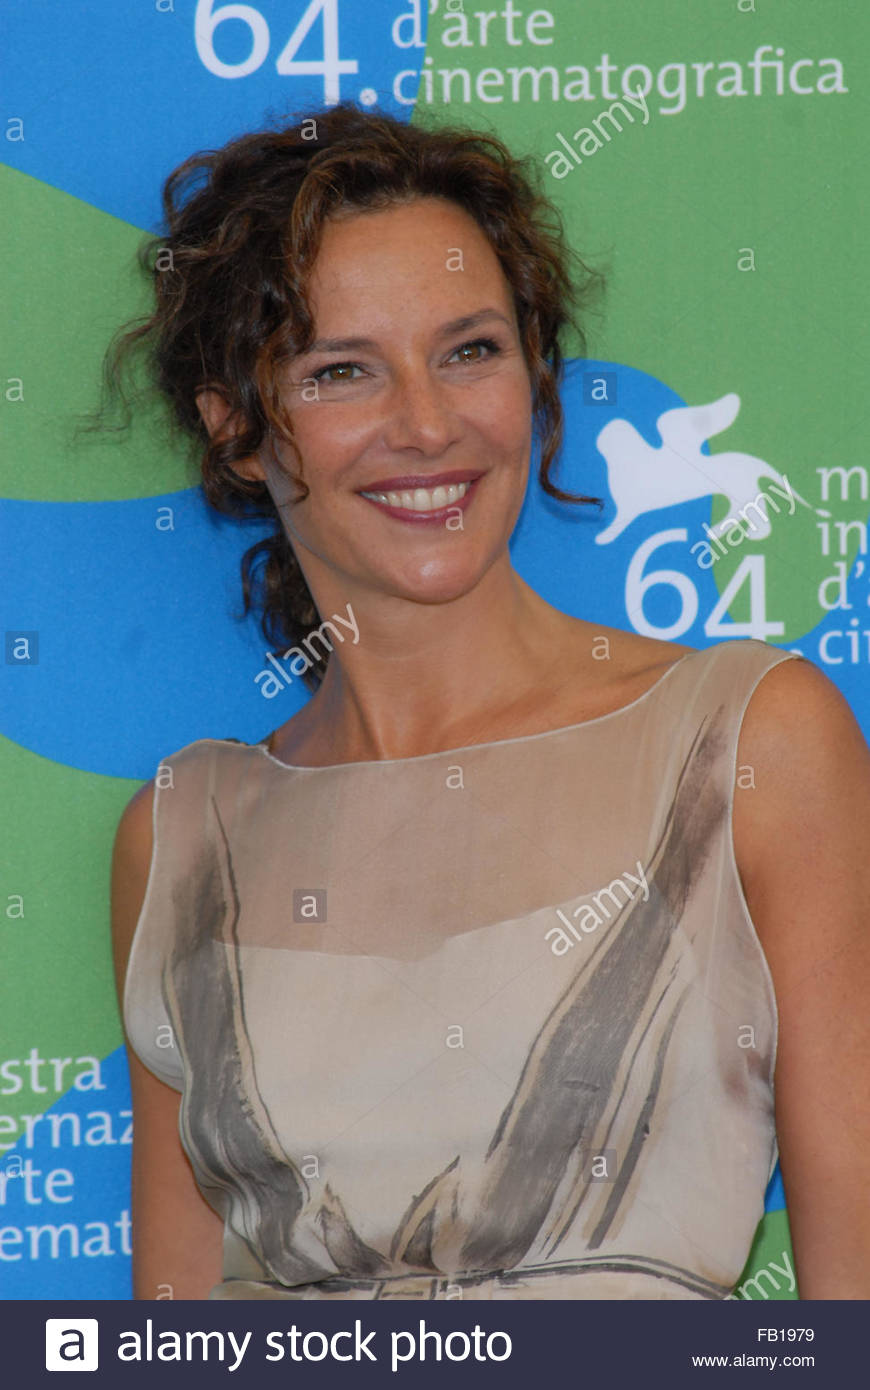 Fappening Legs Jill Hennessy born November 25, 1968 (age 49)  nudes (68 pictures), Facebook, panties